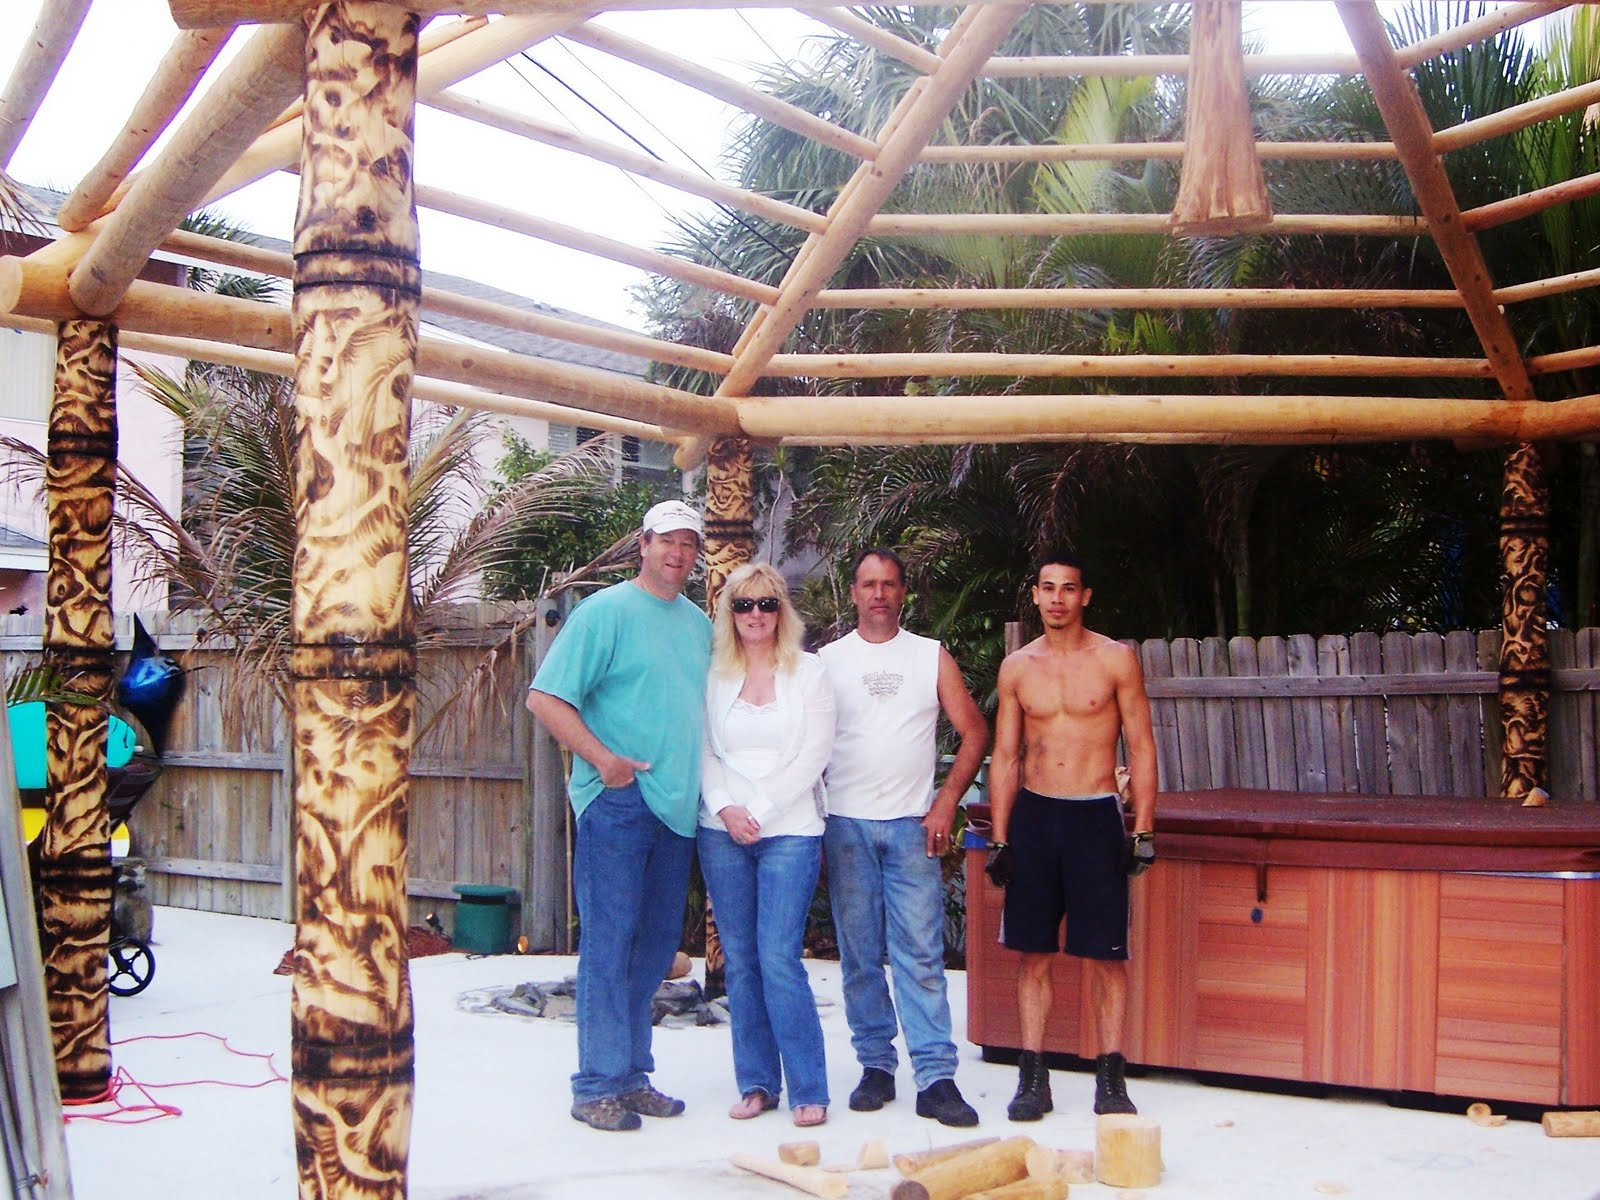 Kahuna Tiki Huts Made Time In Their Busy Schedule To Build A